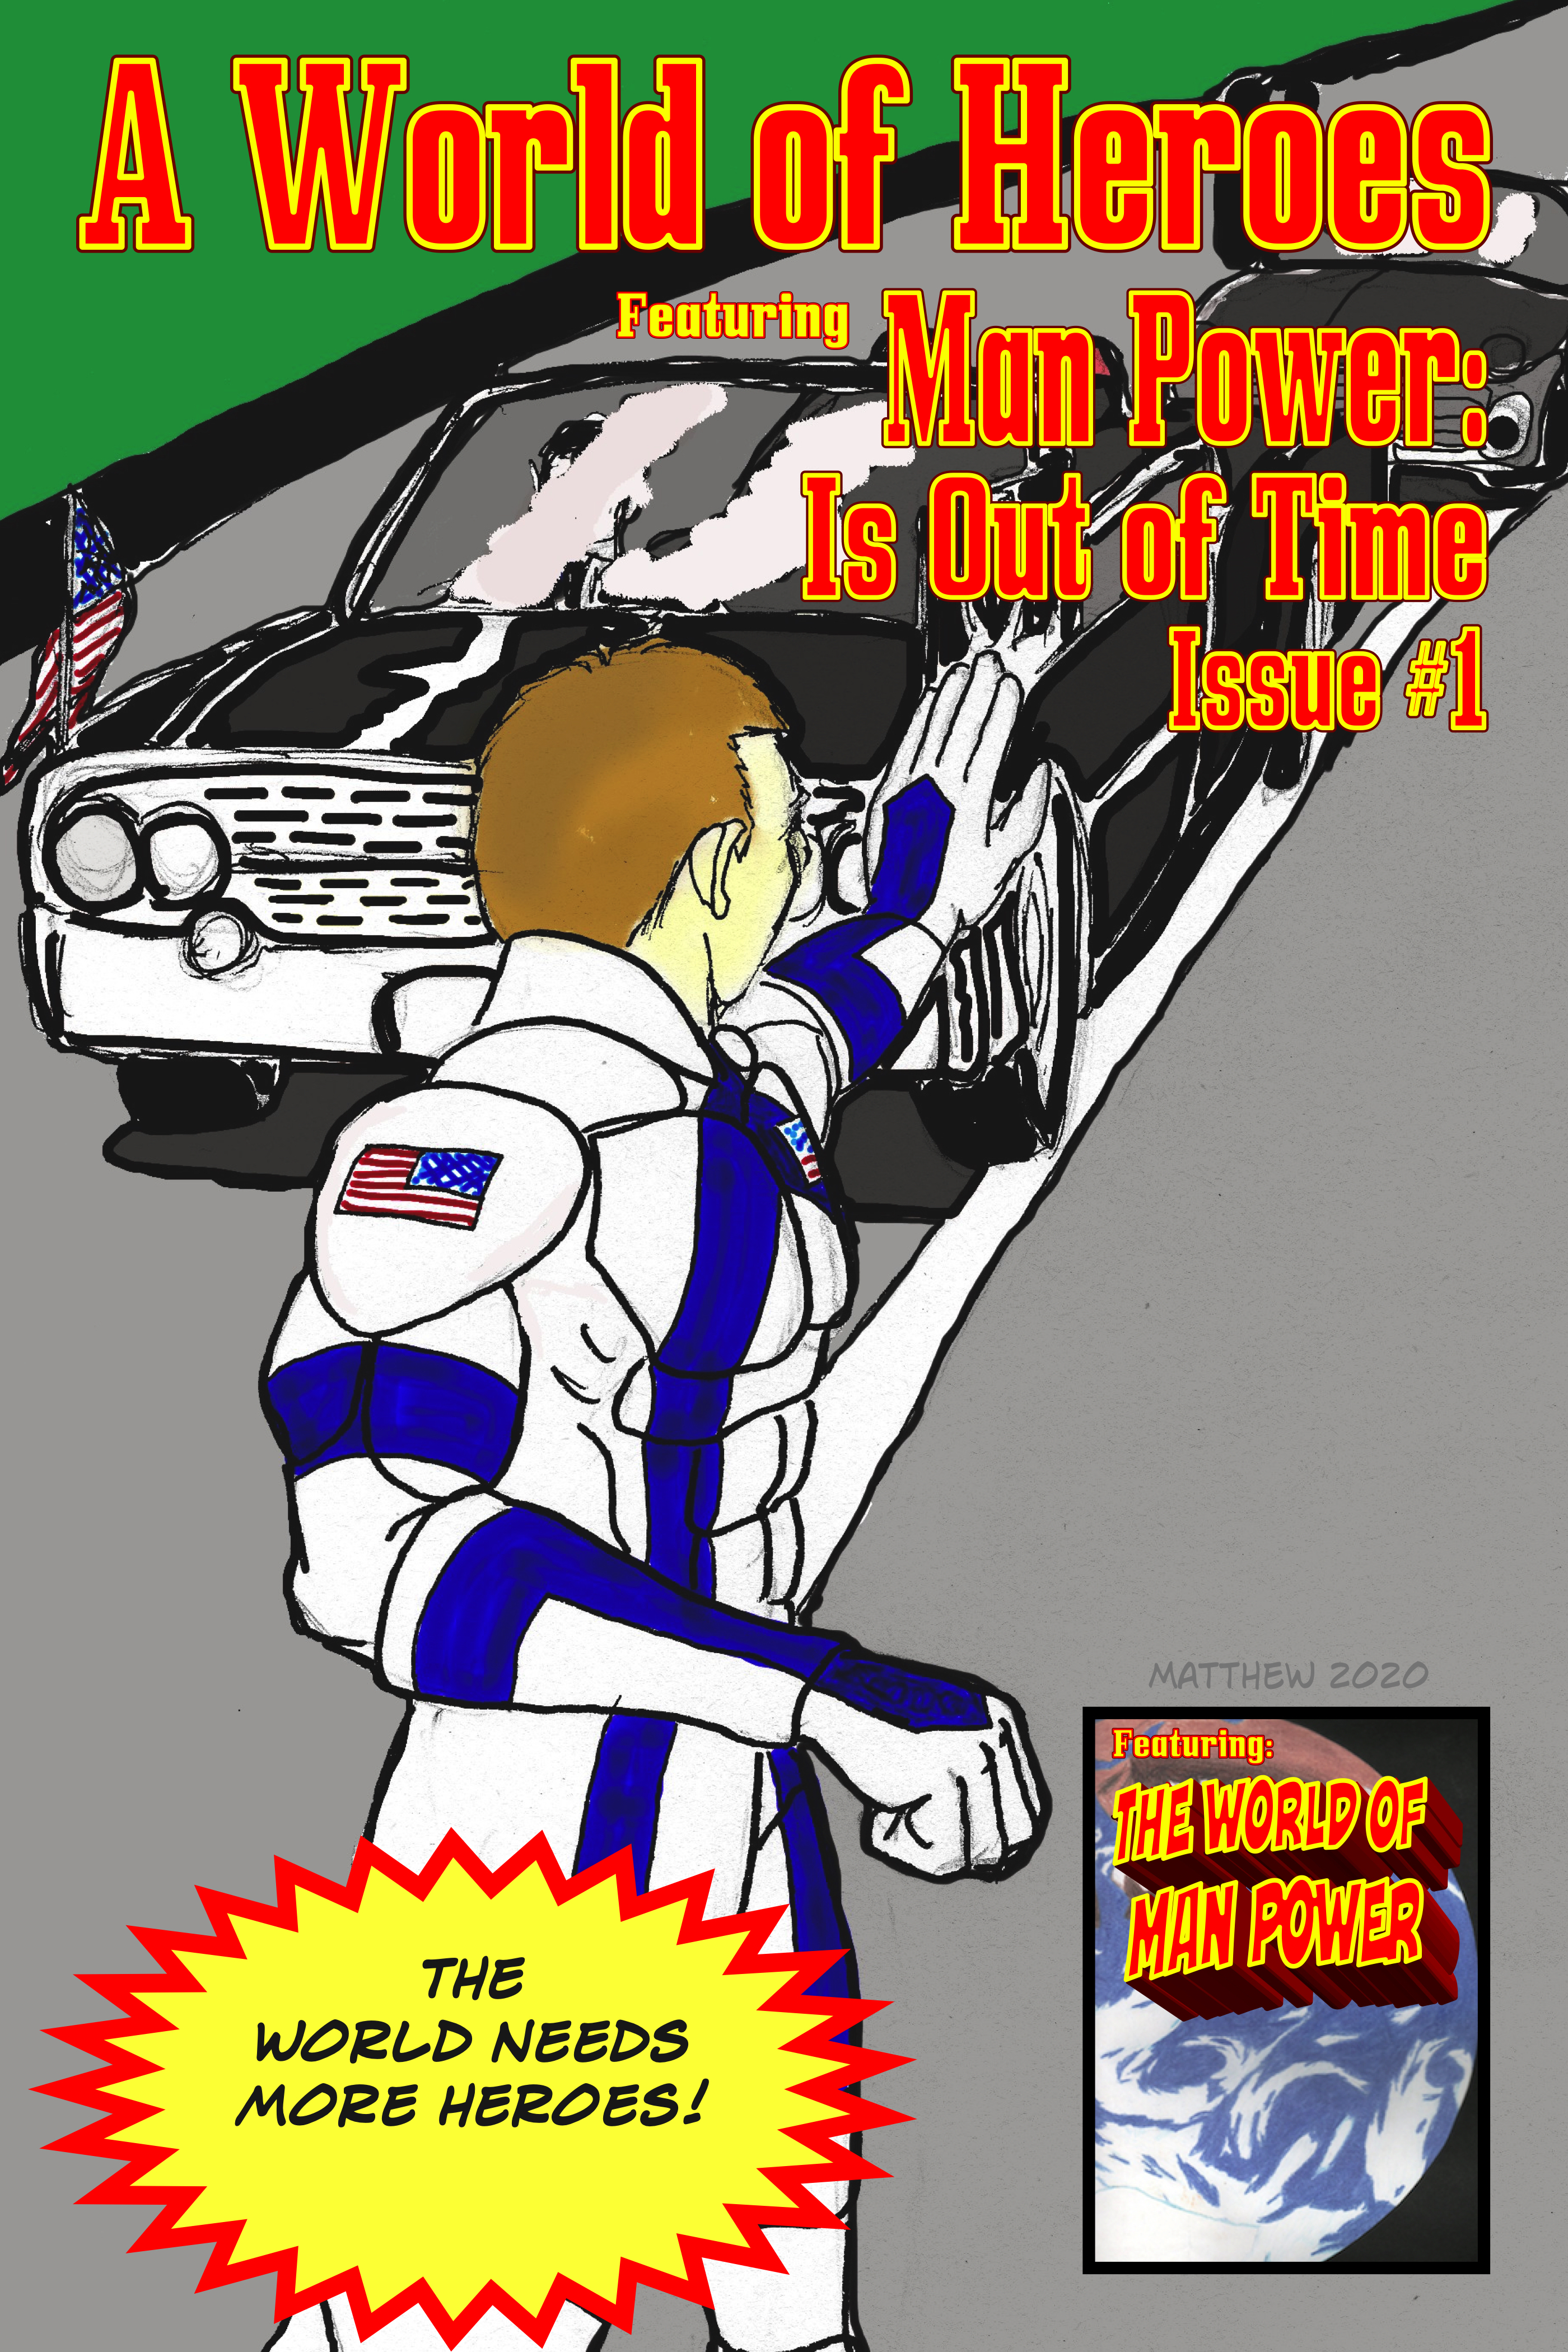 A World of Heroes: Man Power: Is Out of Time